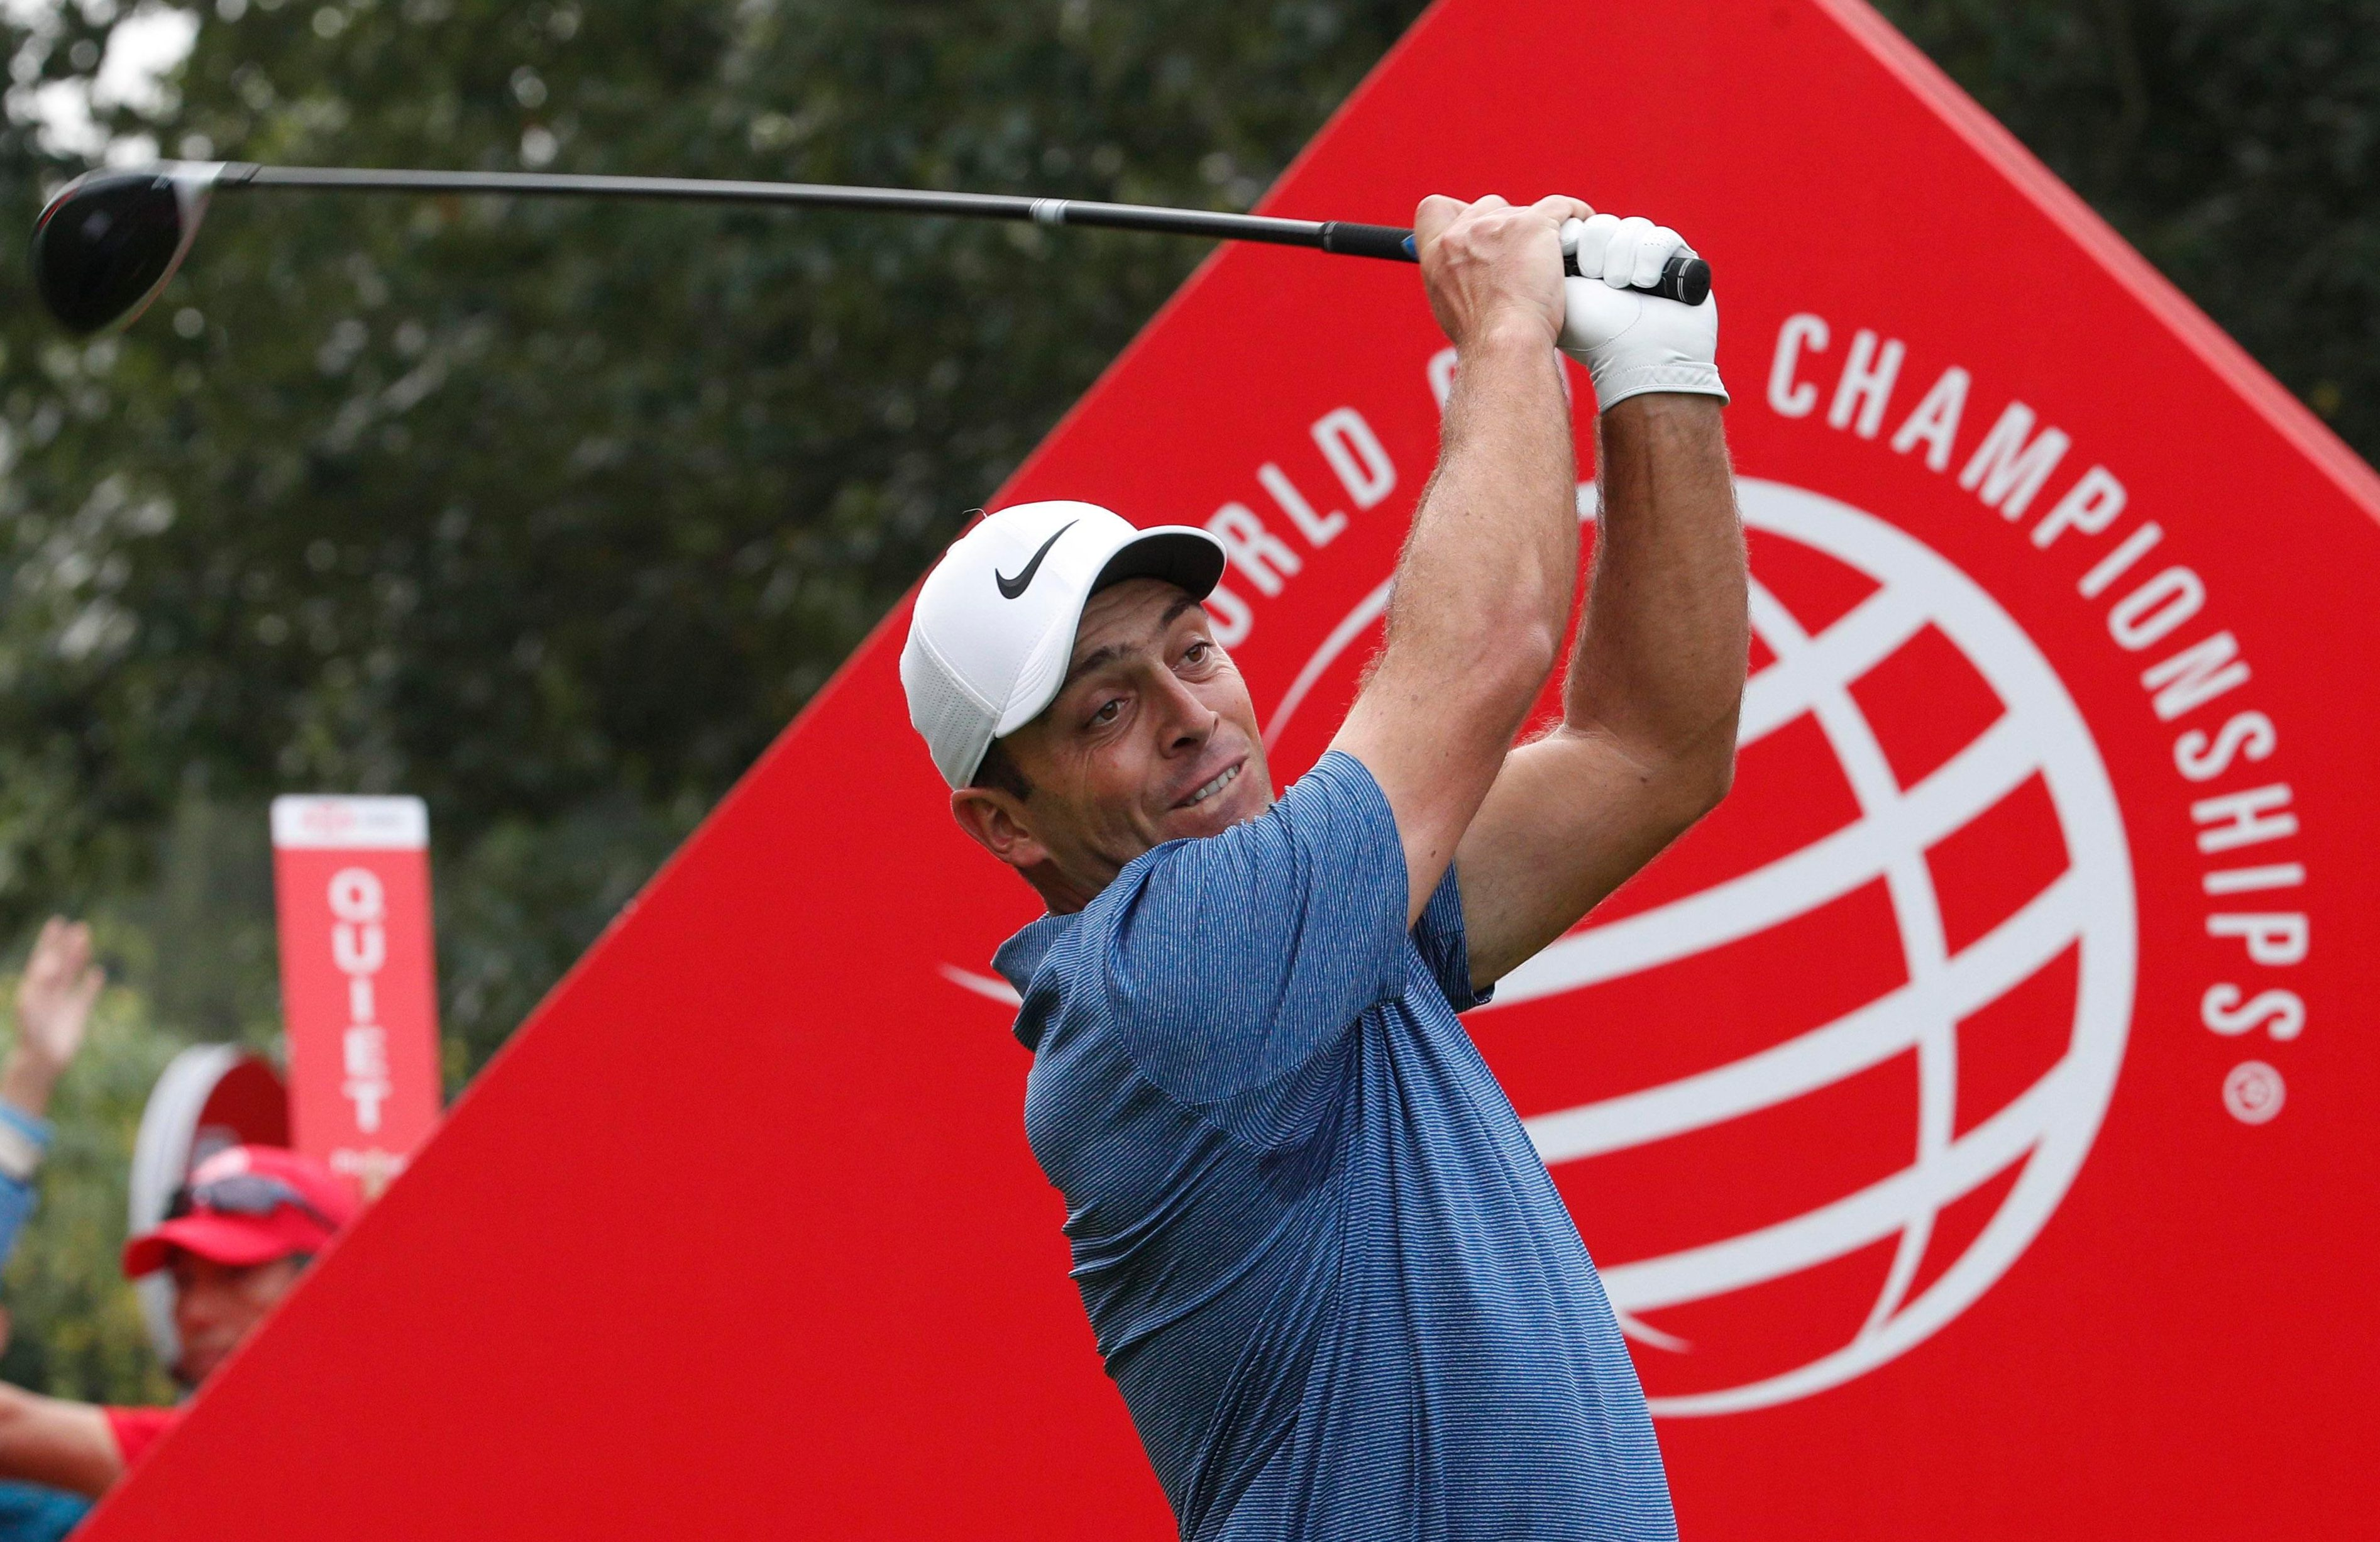 Italian Francesco Molinari says still being in contention for the the Race to Dubai shows how good his year has been